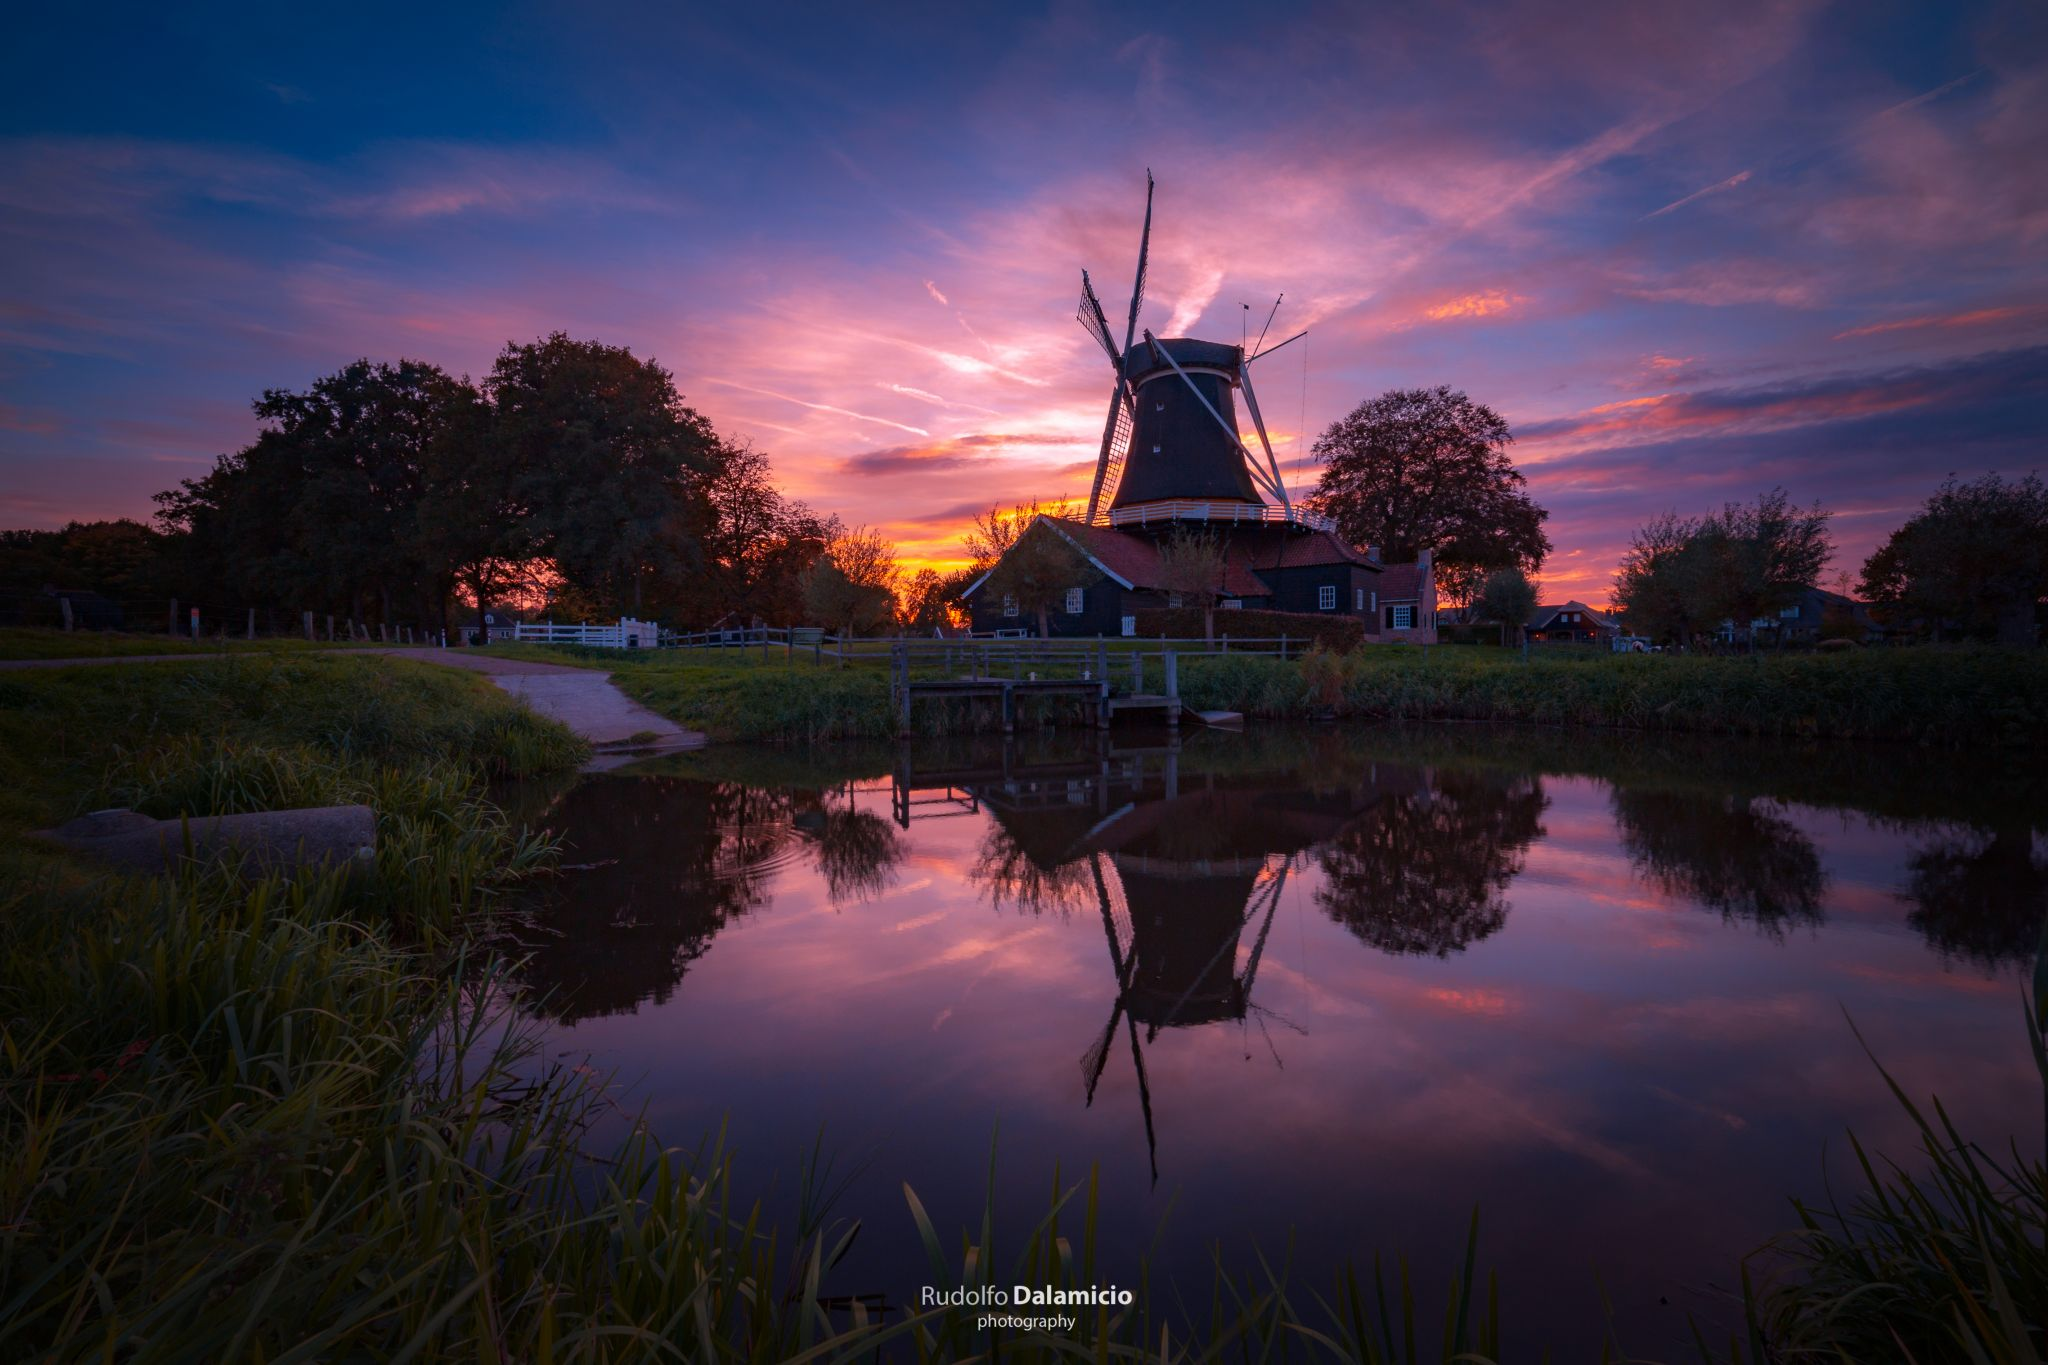 The Dutch Like Mills, Netherlands